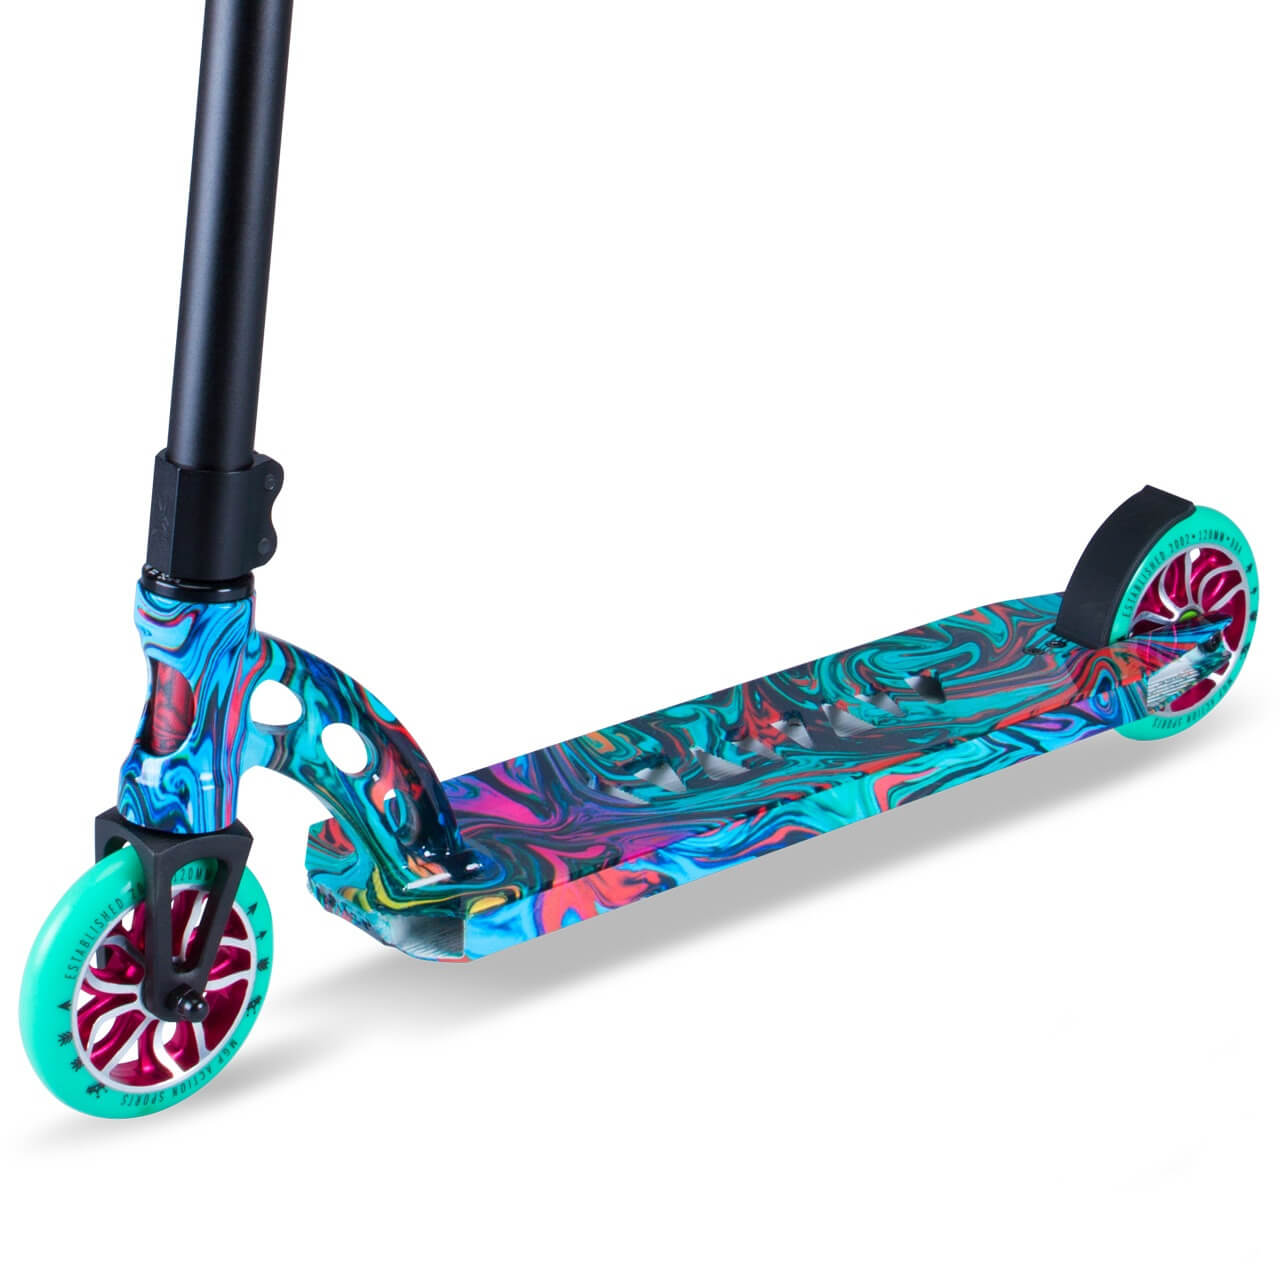 Best kids stunt scooters stunt scooter buying guide 2017 mgp vx7 extreme specification aloadofball Images